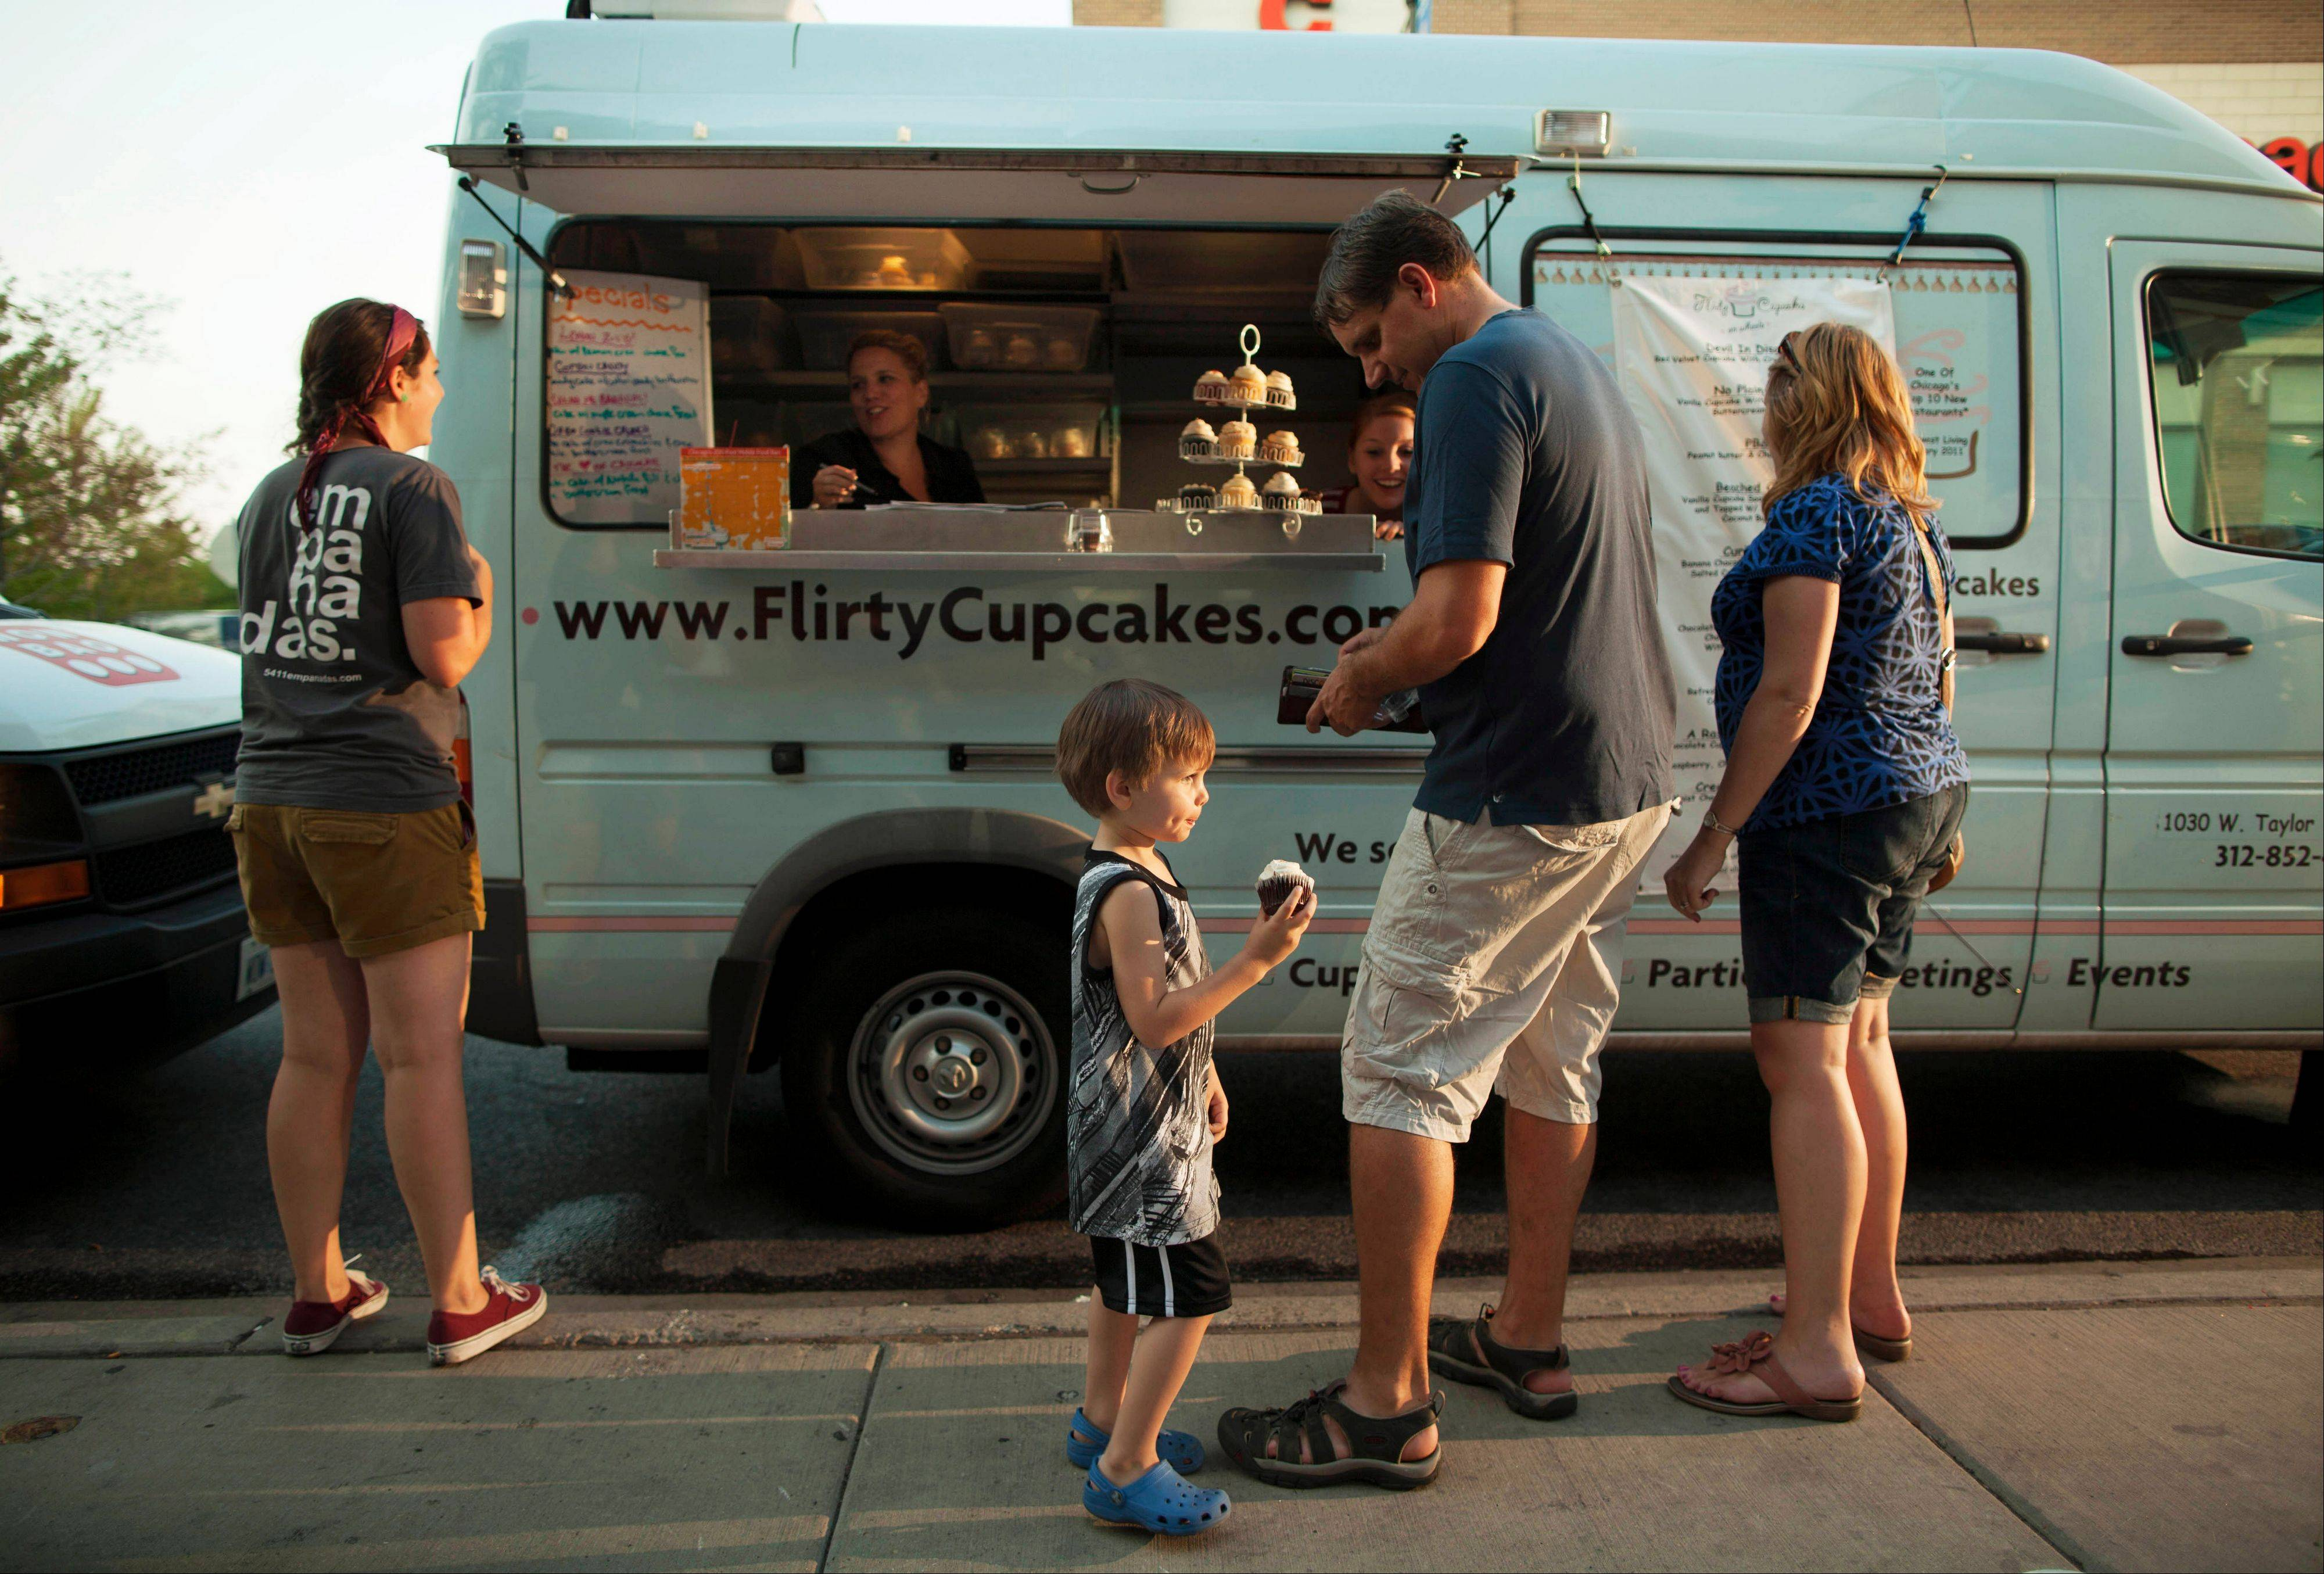 In this July 12, 2012 photo, a young customer eats a cupcake bought from the Flirty Cupcakes food truck in Chicago. A proposed ordinance would finally allow food trucks to cook and prepare food but continue to ban them from setting up shop any closer than 200 feet away from restaurants and capping the time they can stay put in one spot at two hours. The full City Council could vote on the proposal as soon as next week. (AP Photo/Sitthixay Ditthavong)